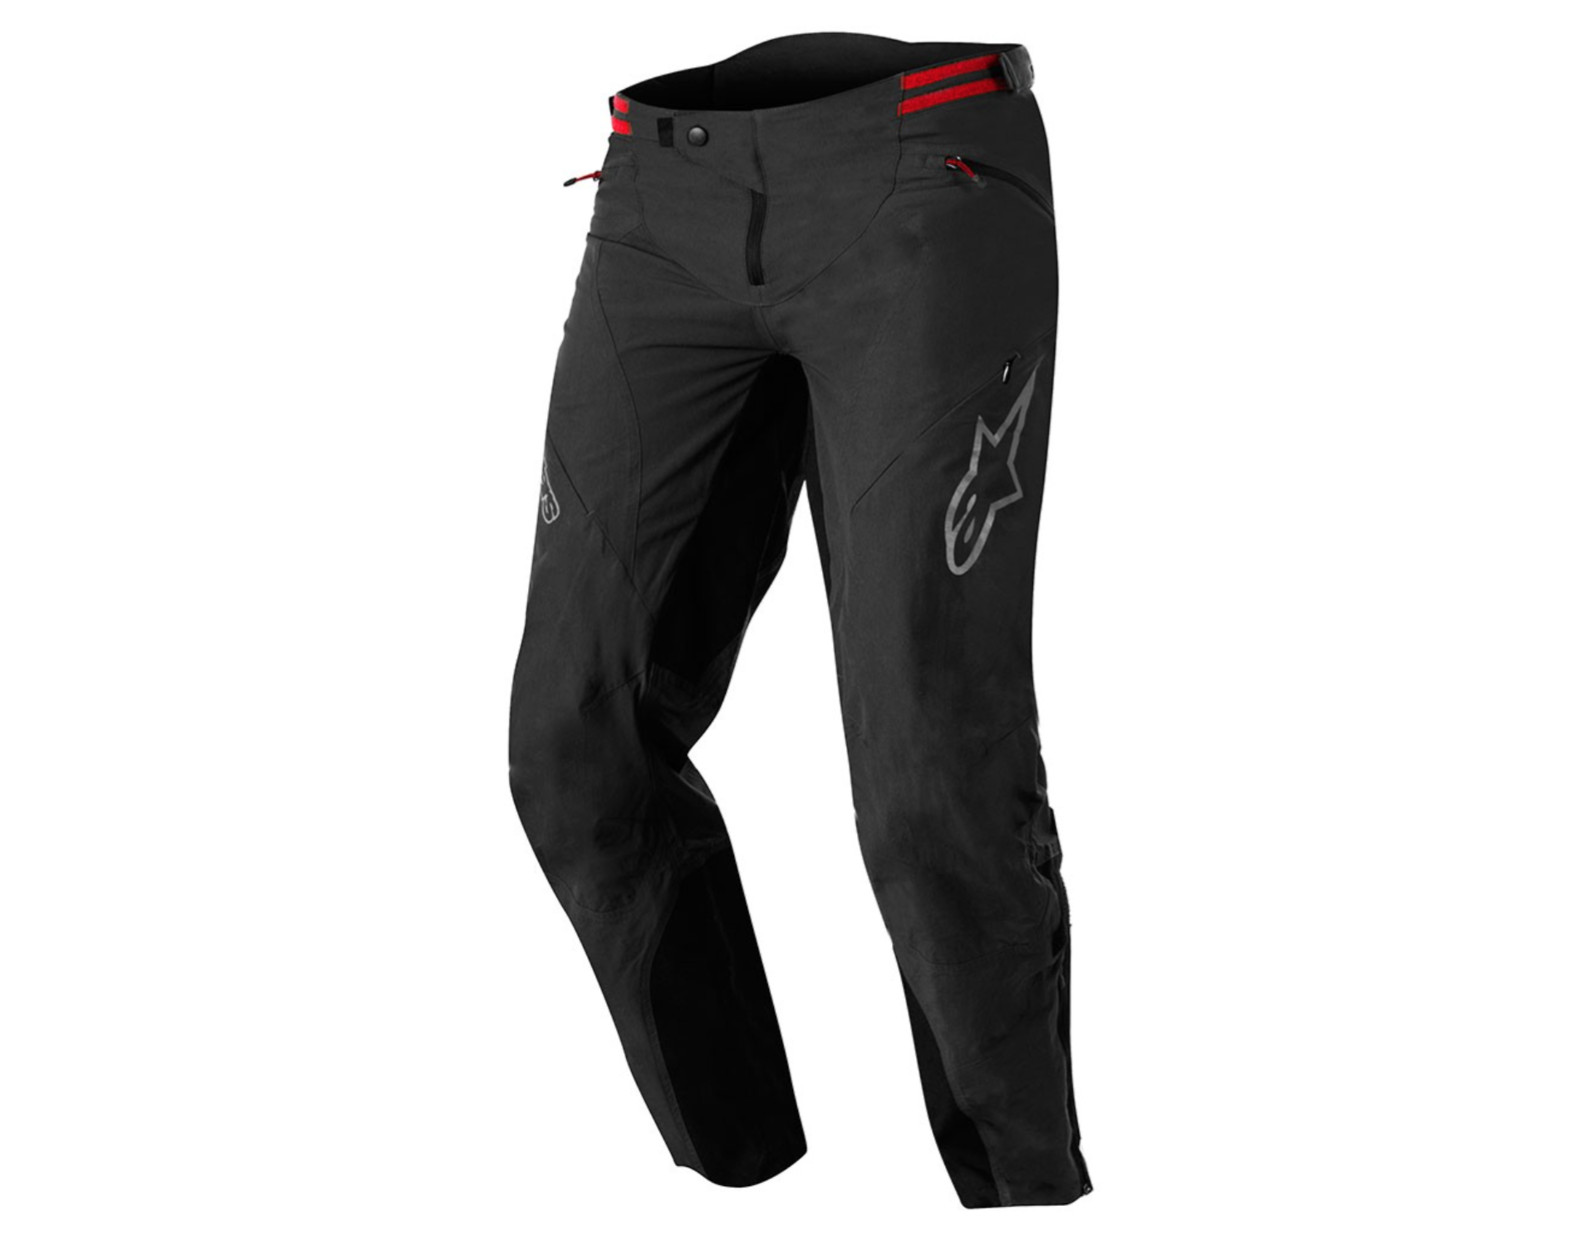 Alpinestars All Mountain 2 Pants - Black